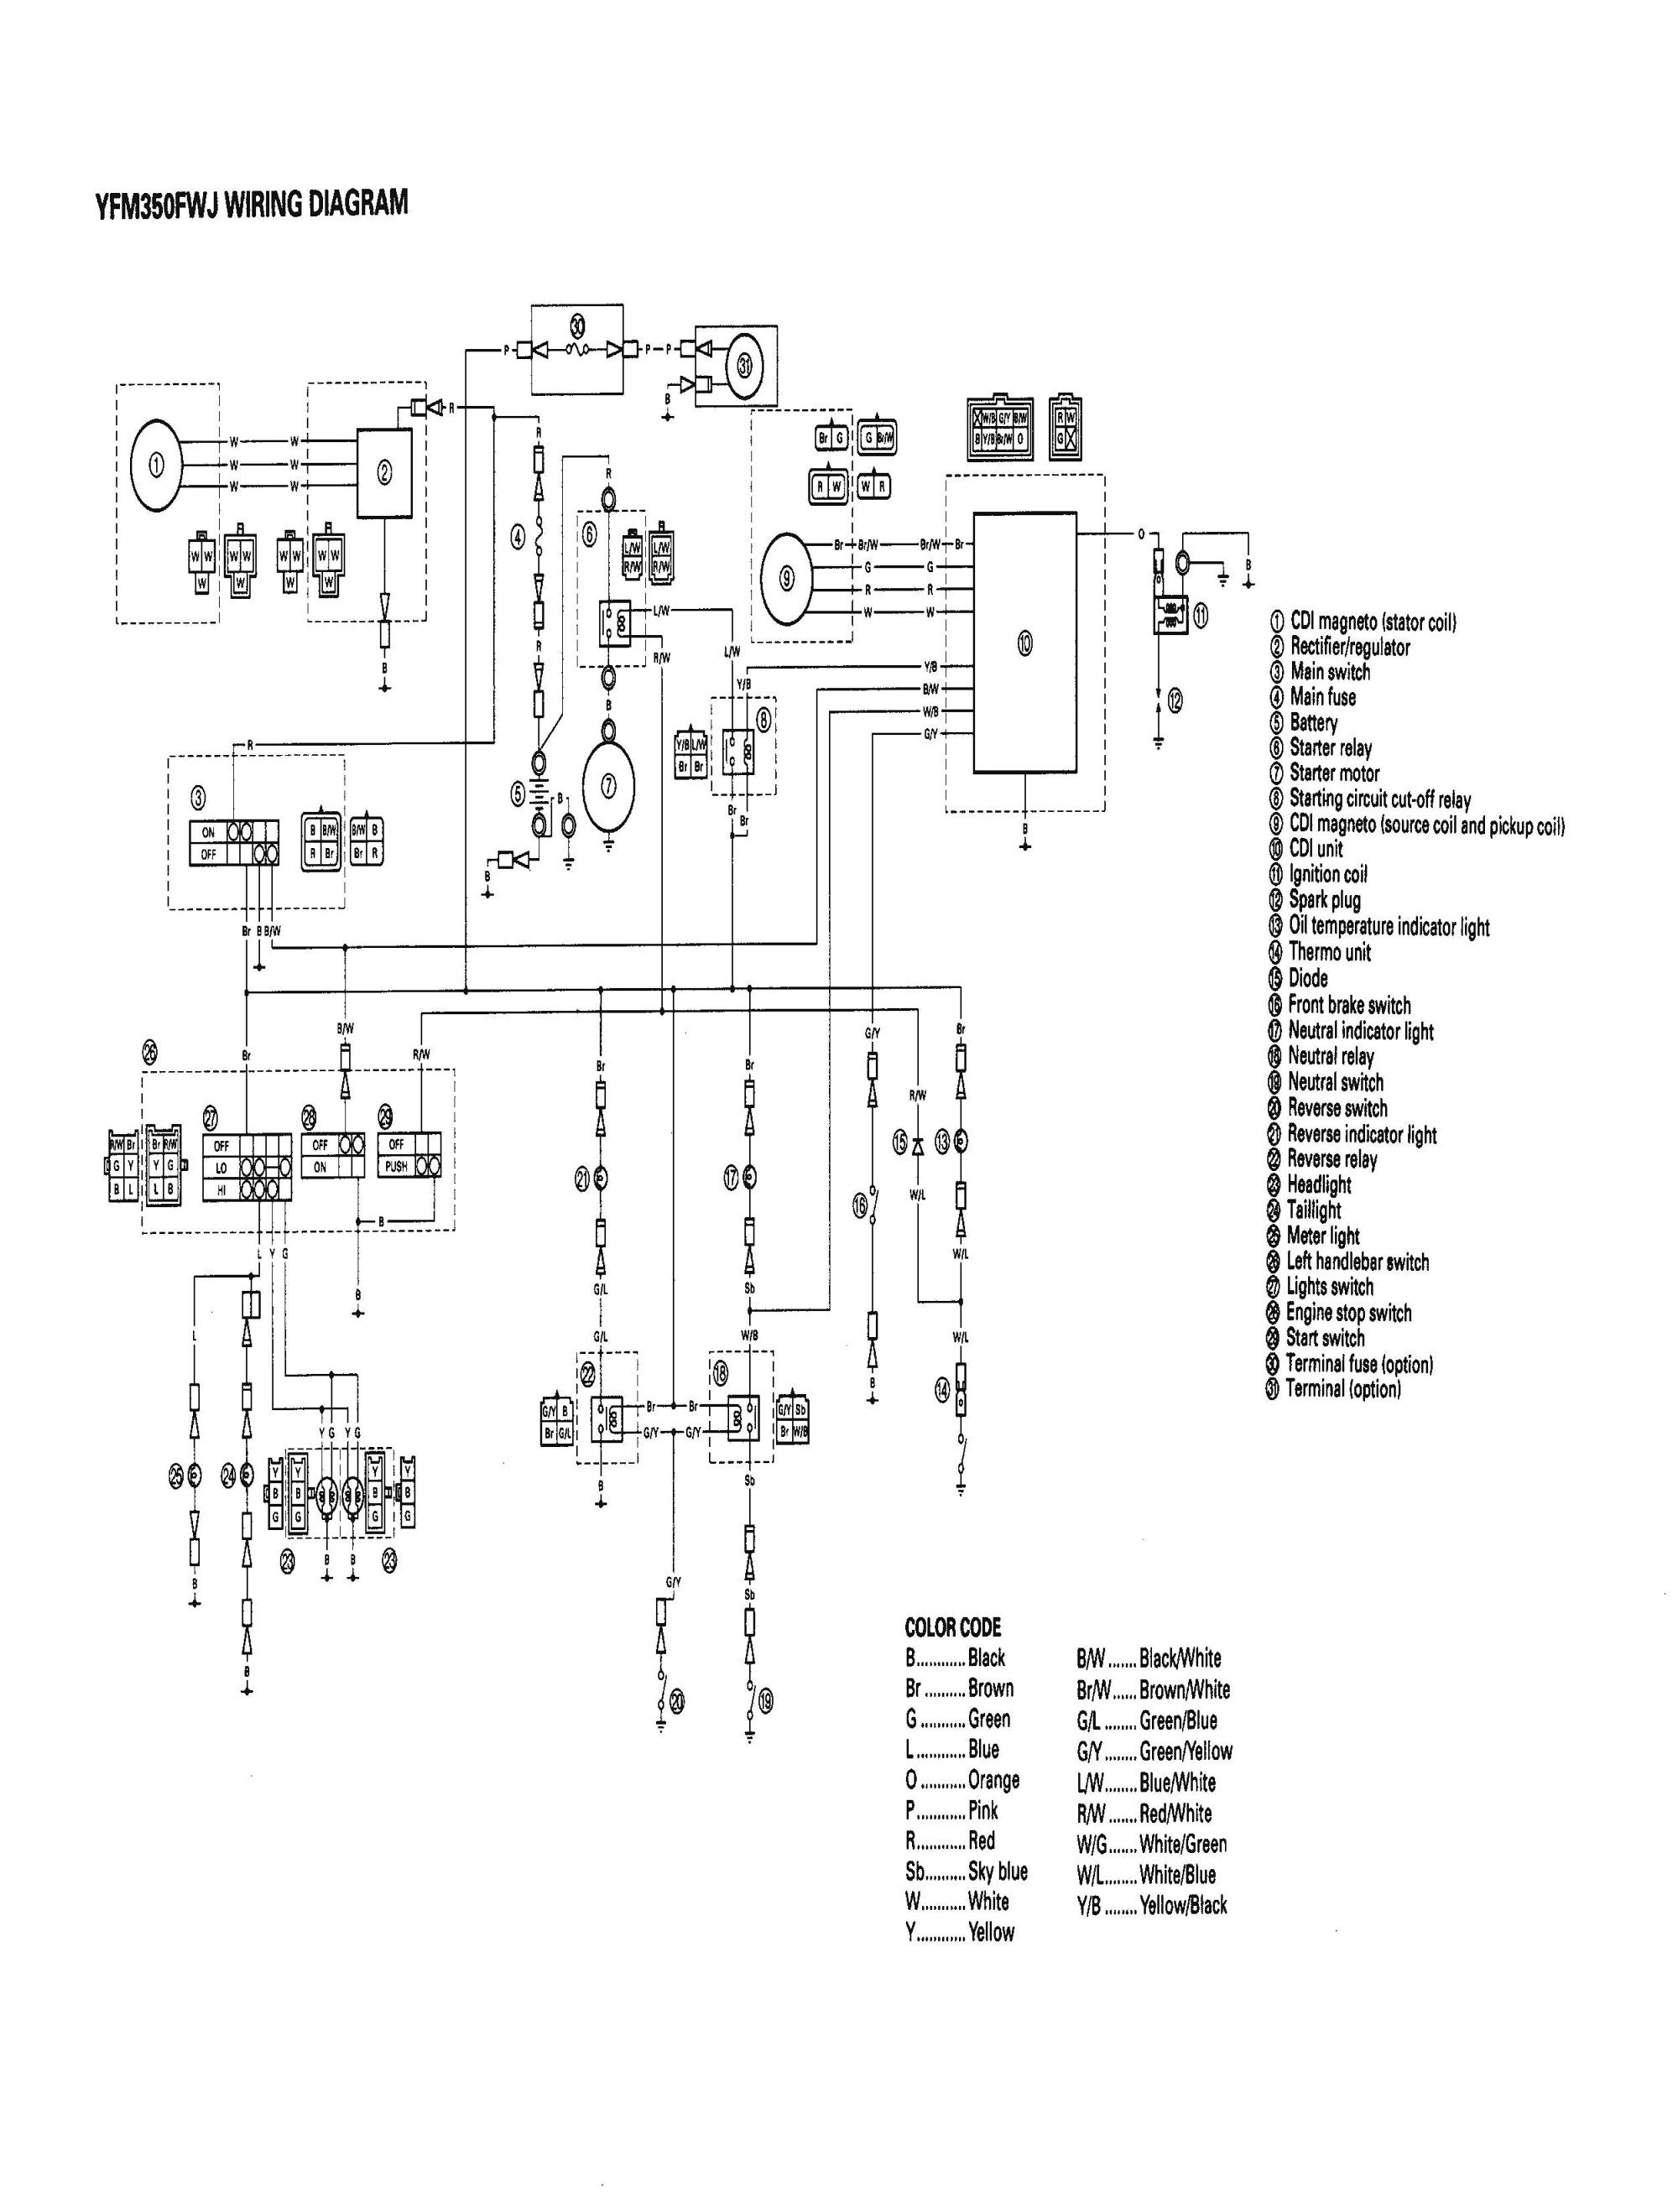 hight resolution of wiring diagram 125 grizzly wiring diagrams konsult raptor wiring diagram wiring diagram schematic wiring diagram 125